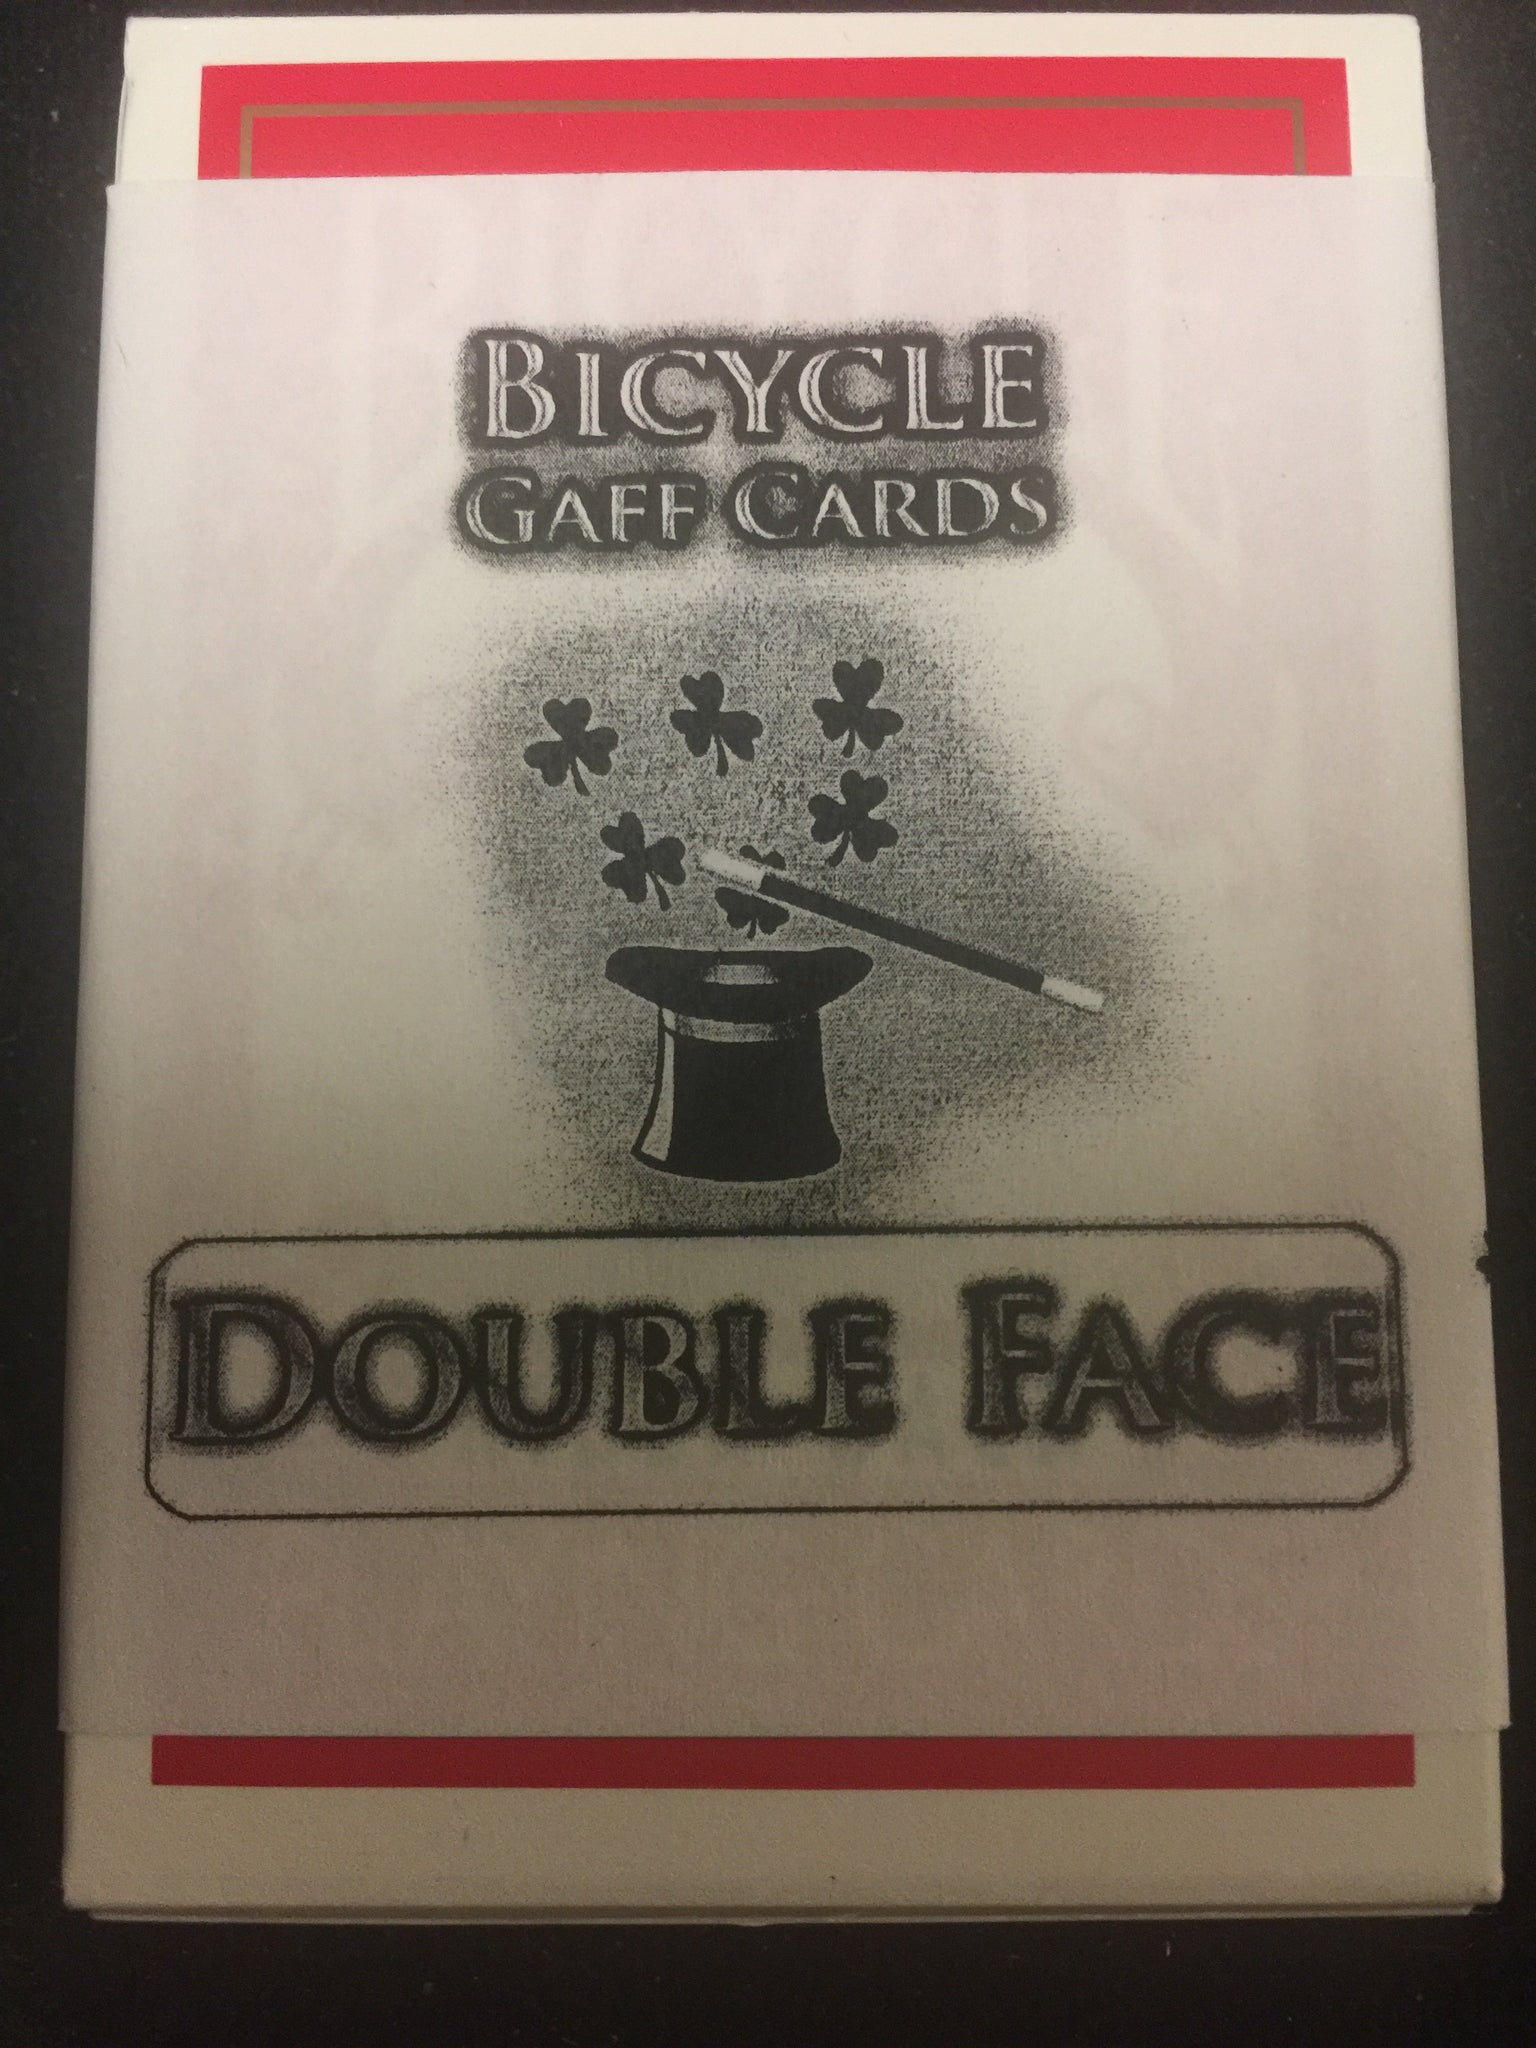 Bicycle Double Face Gaff cards